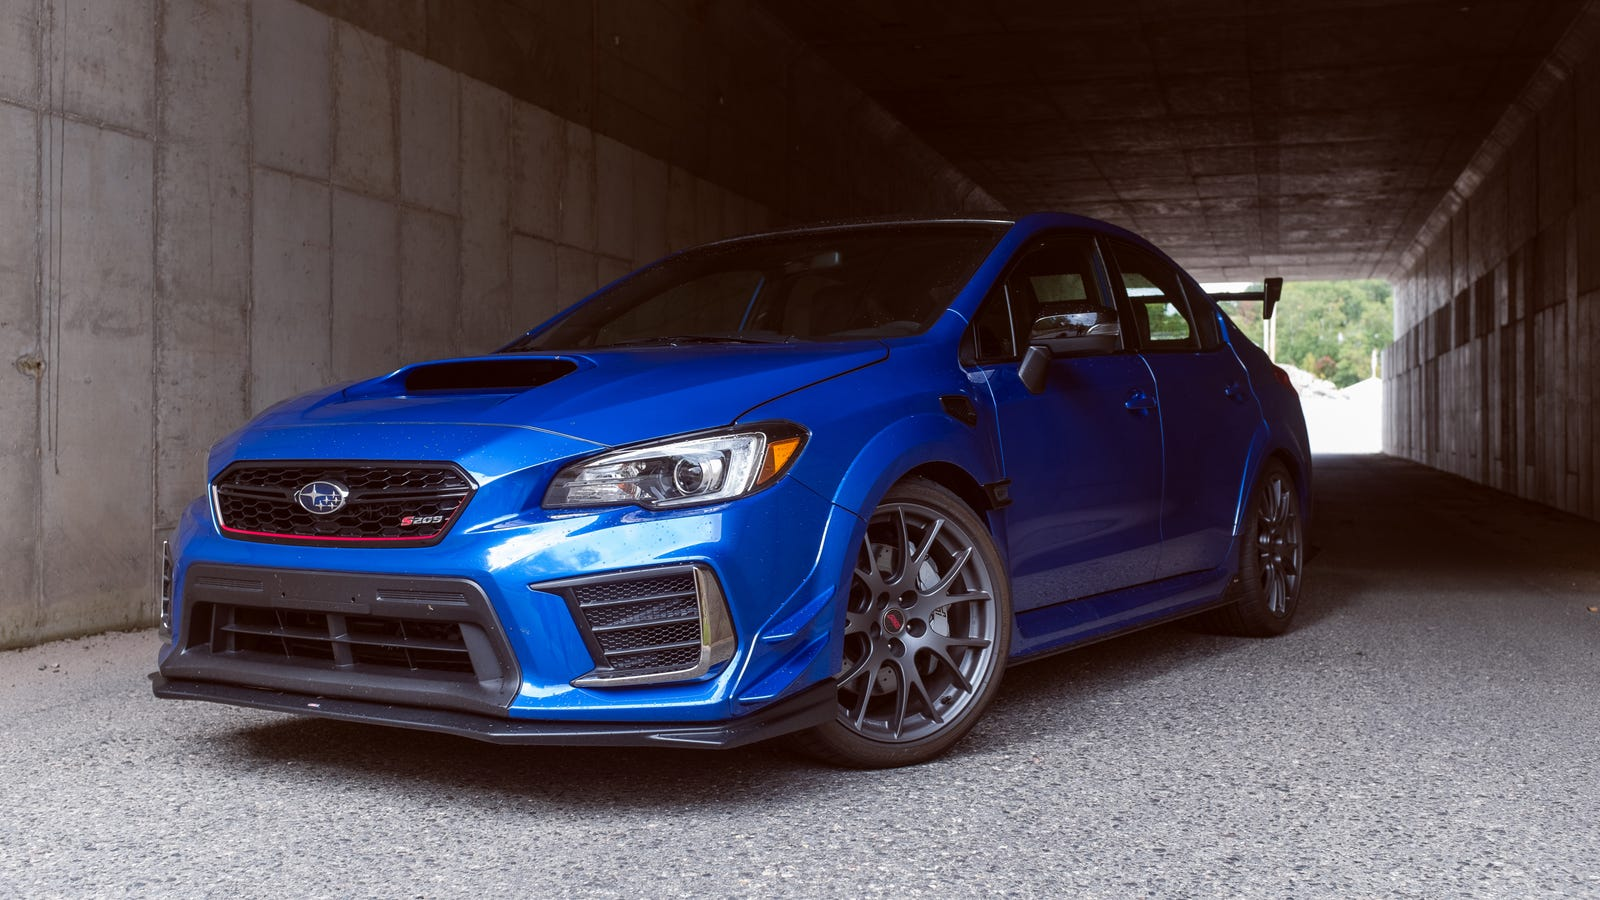 The 2020 Subaru WRX STI S209 Has So Much Grip Even Race Car Drivers Struggle To Get It Sideways